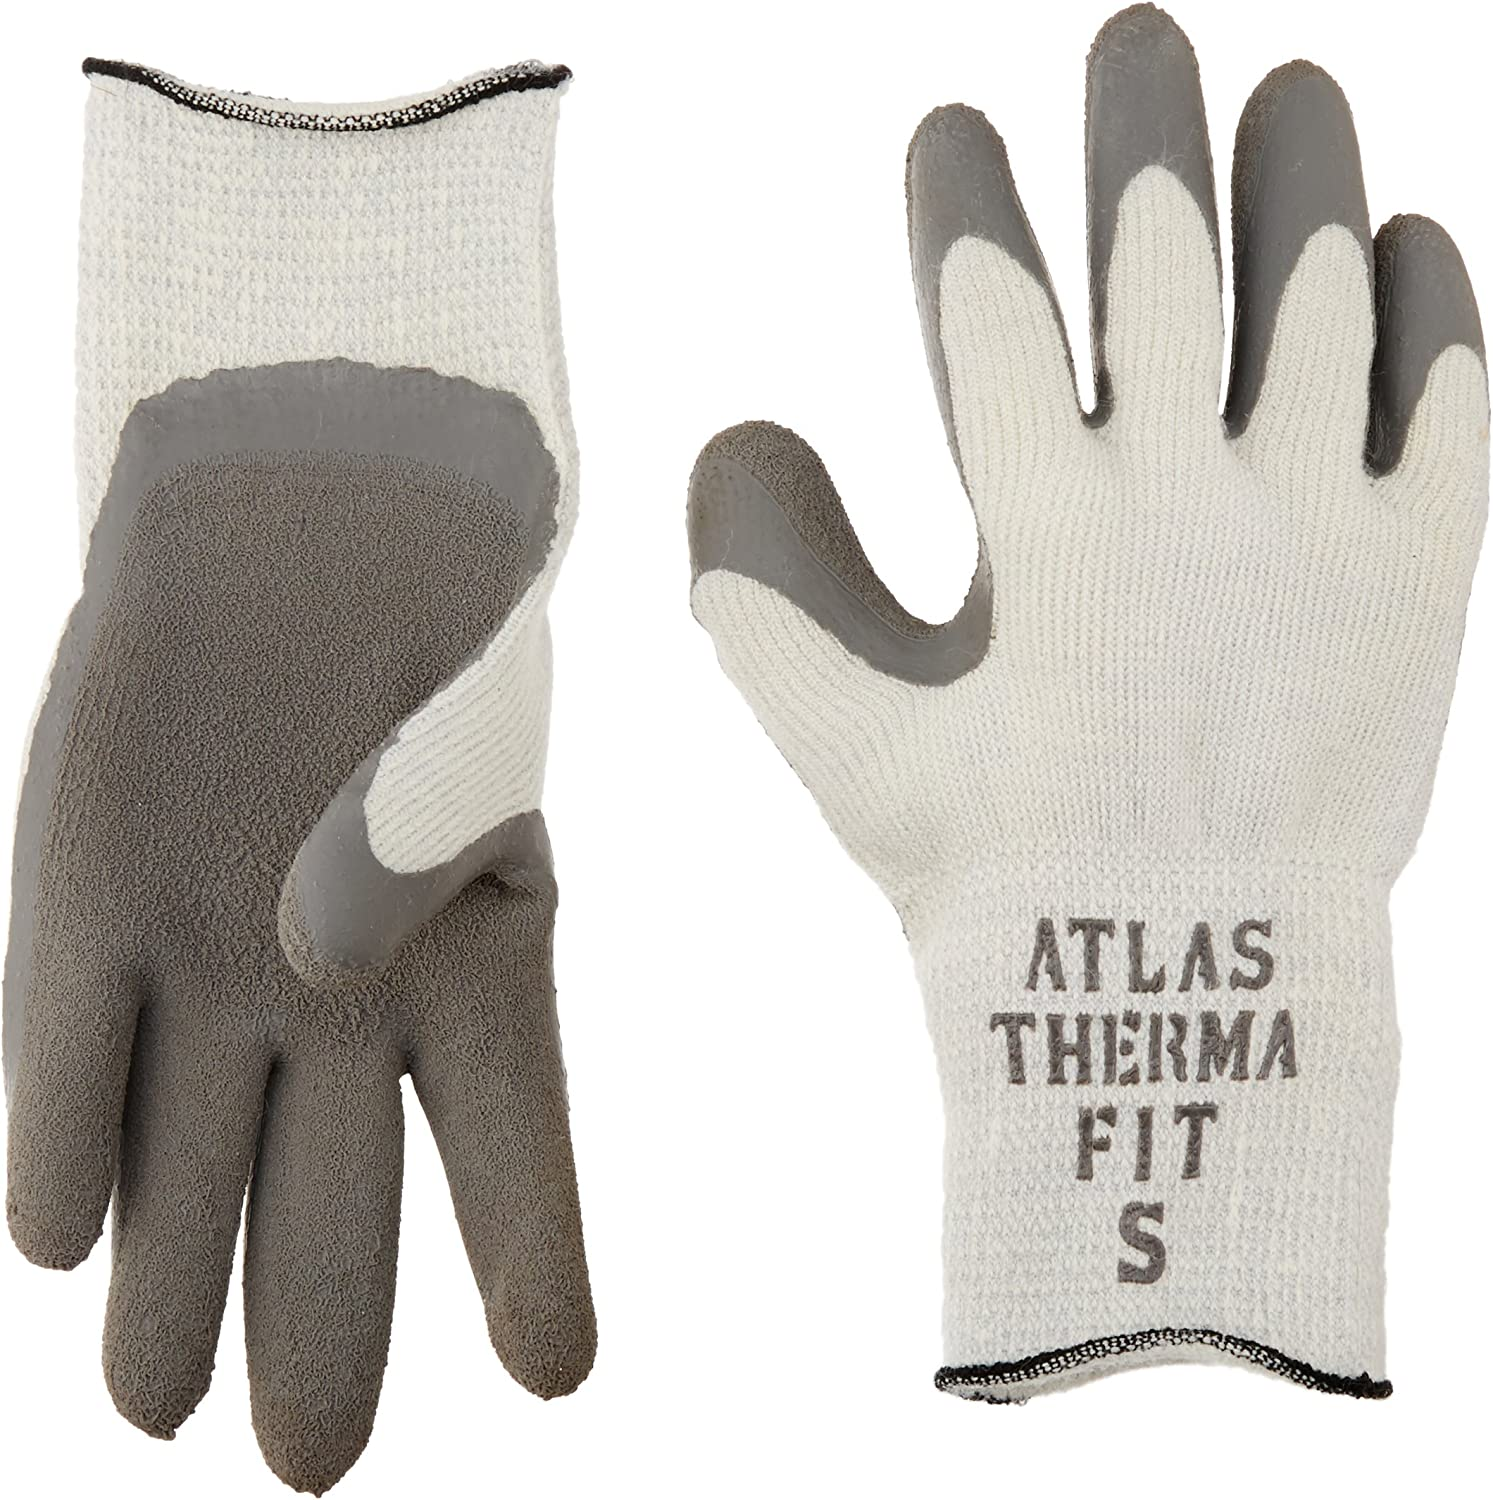 Atlas Glove C300IS Small Atlas Therma Fit Gloves